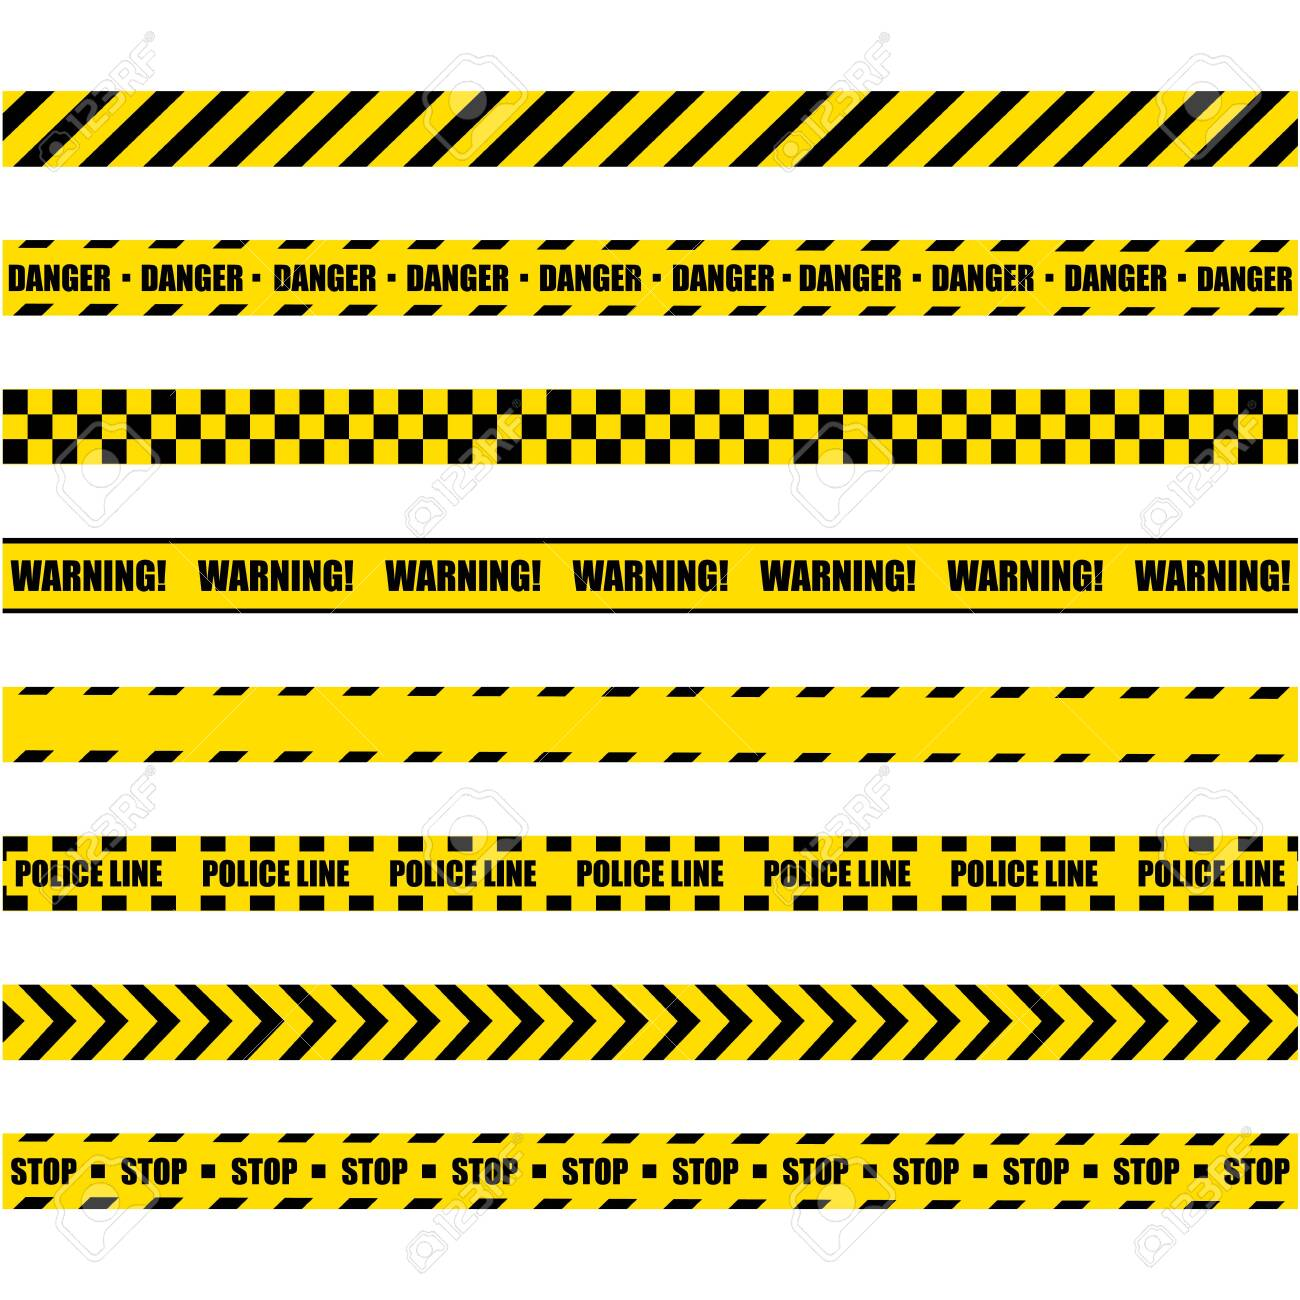 Police Warning Line. Yellow And Black Barricade Construction Tape On White Background. - 135790496